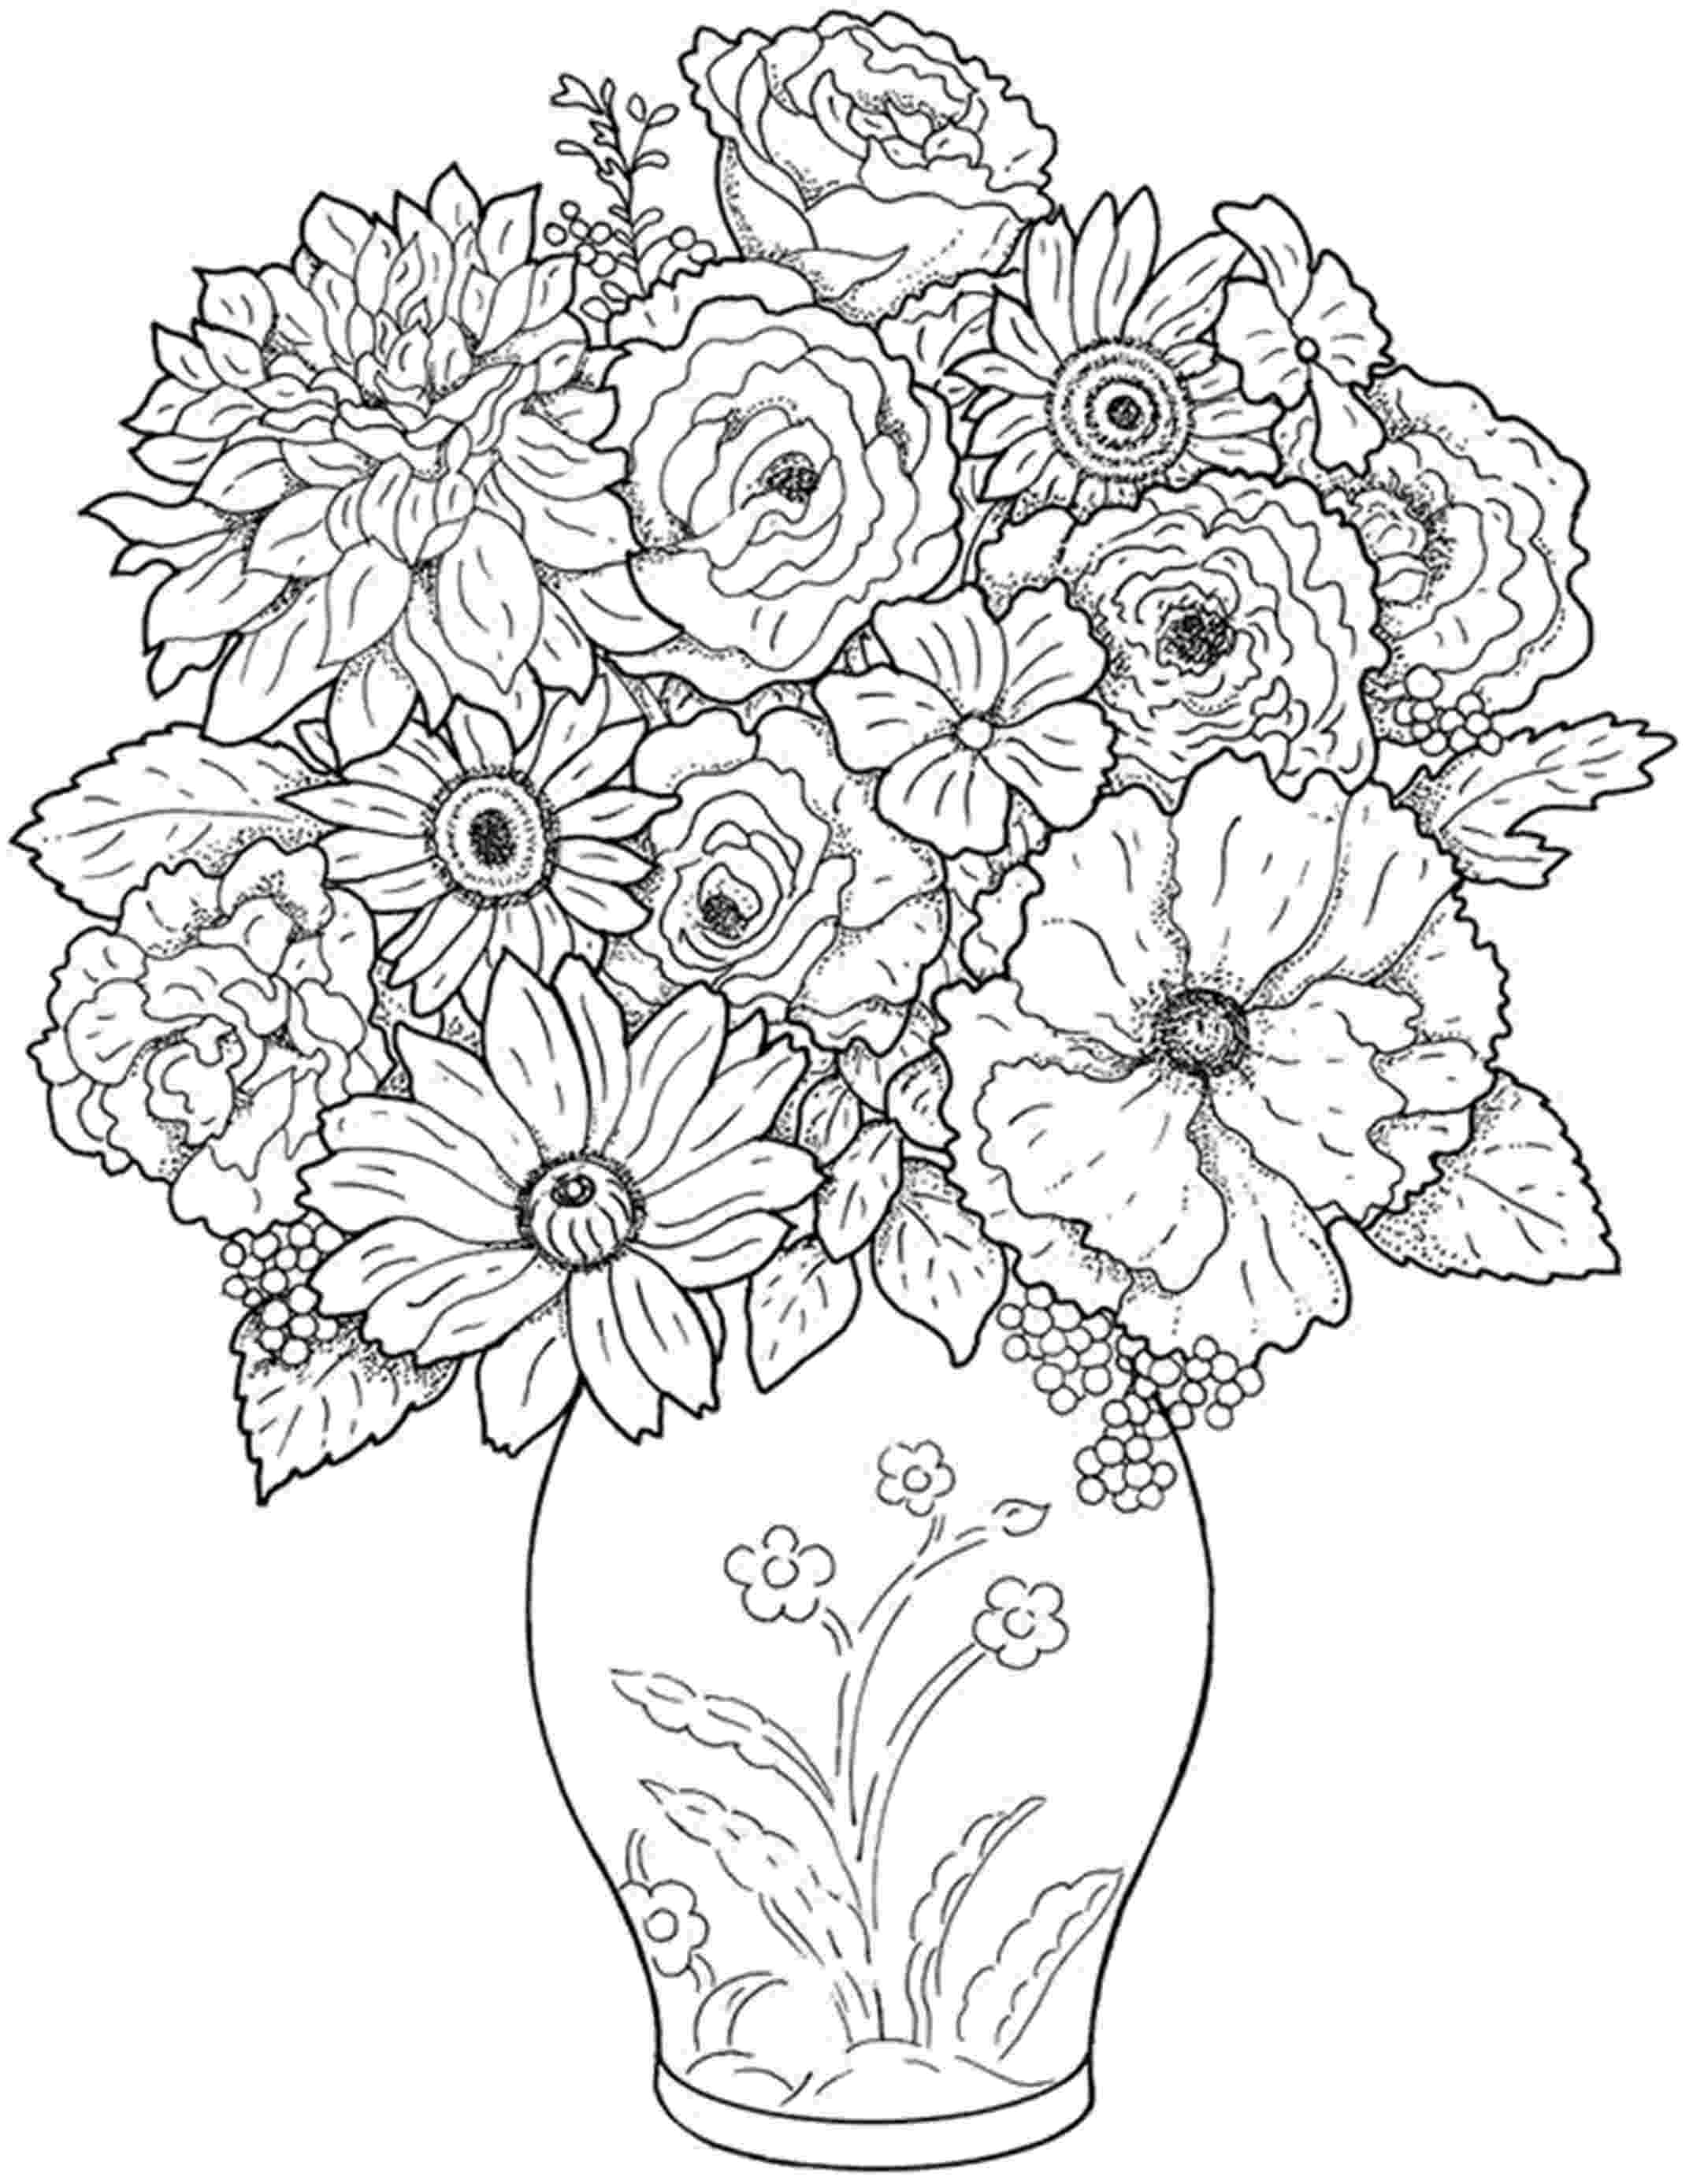 coloring flowers free printable flower coloring pages for kids best flowers coloring